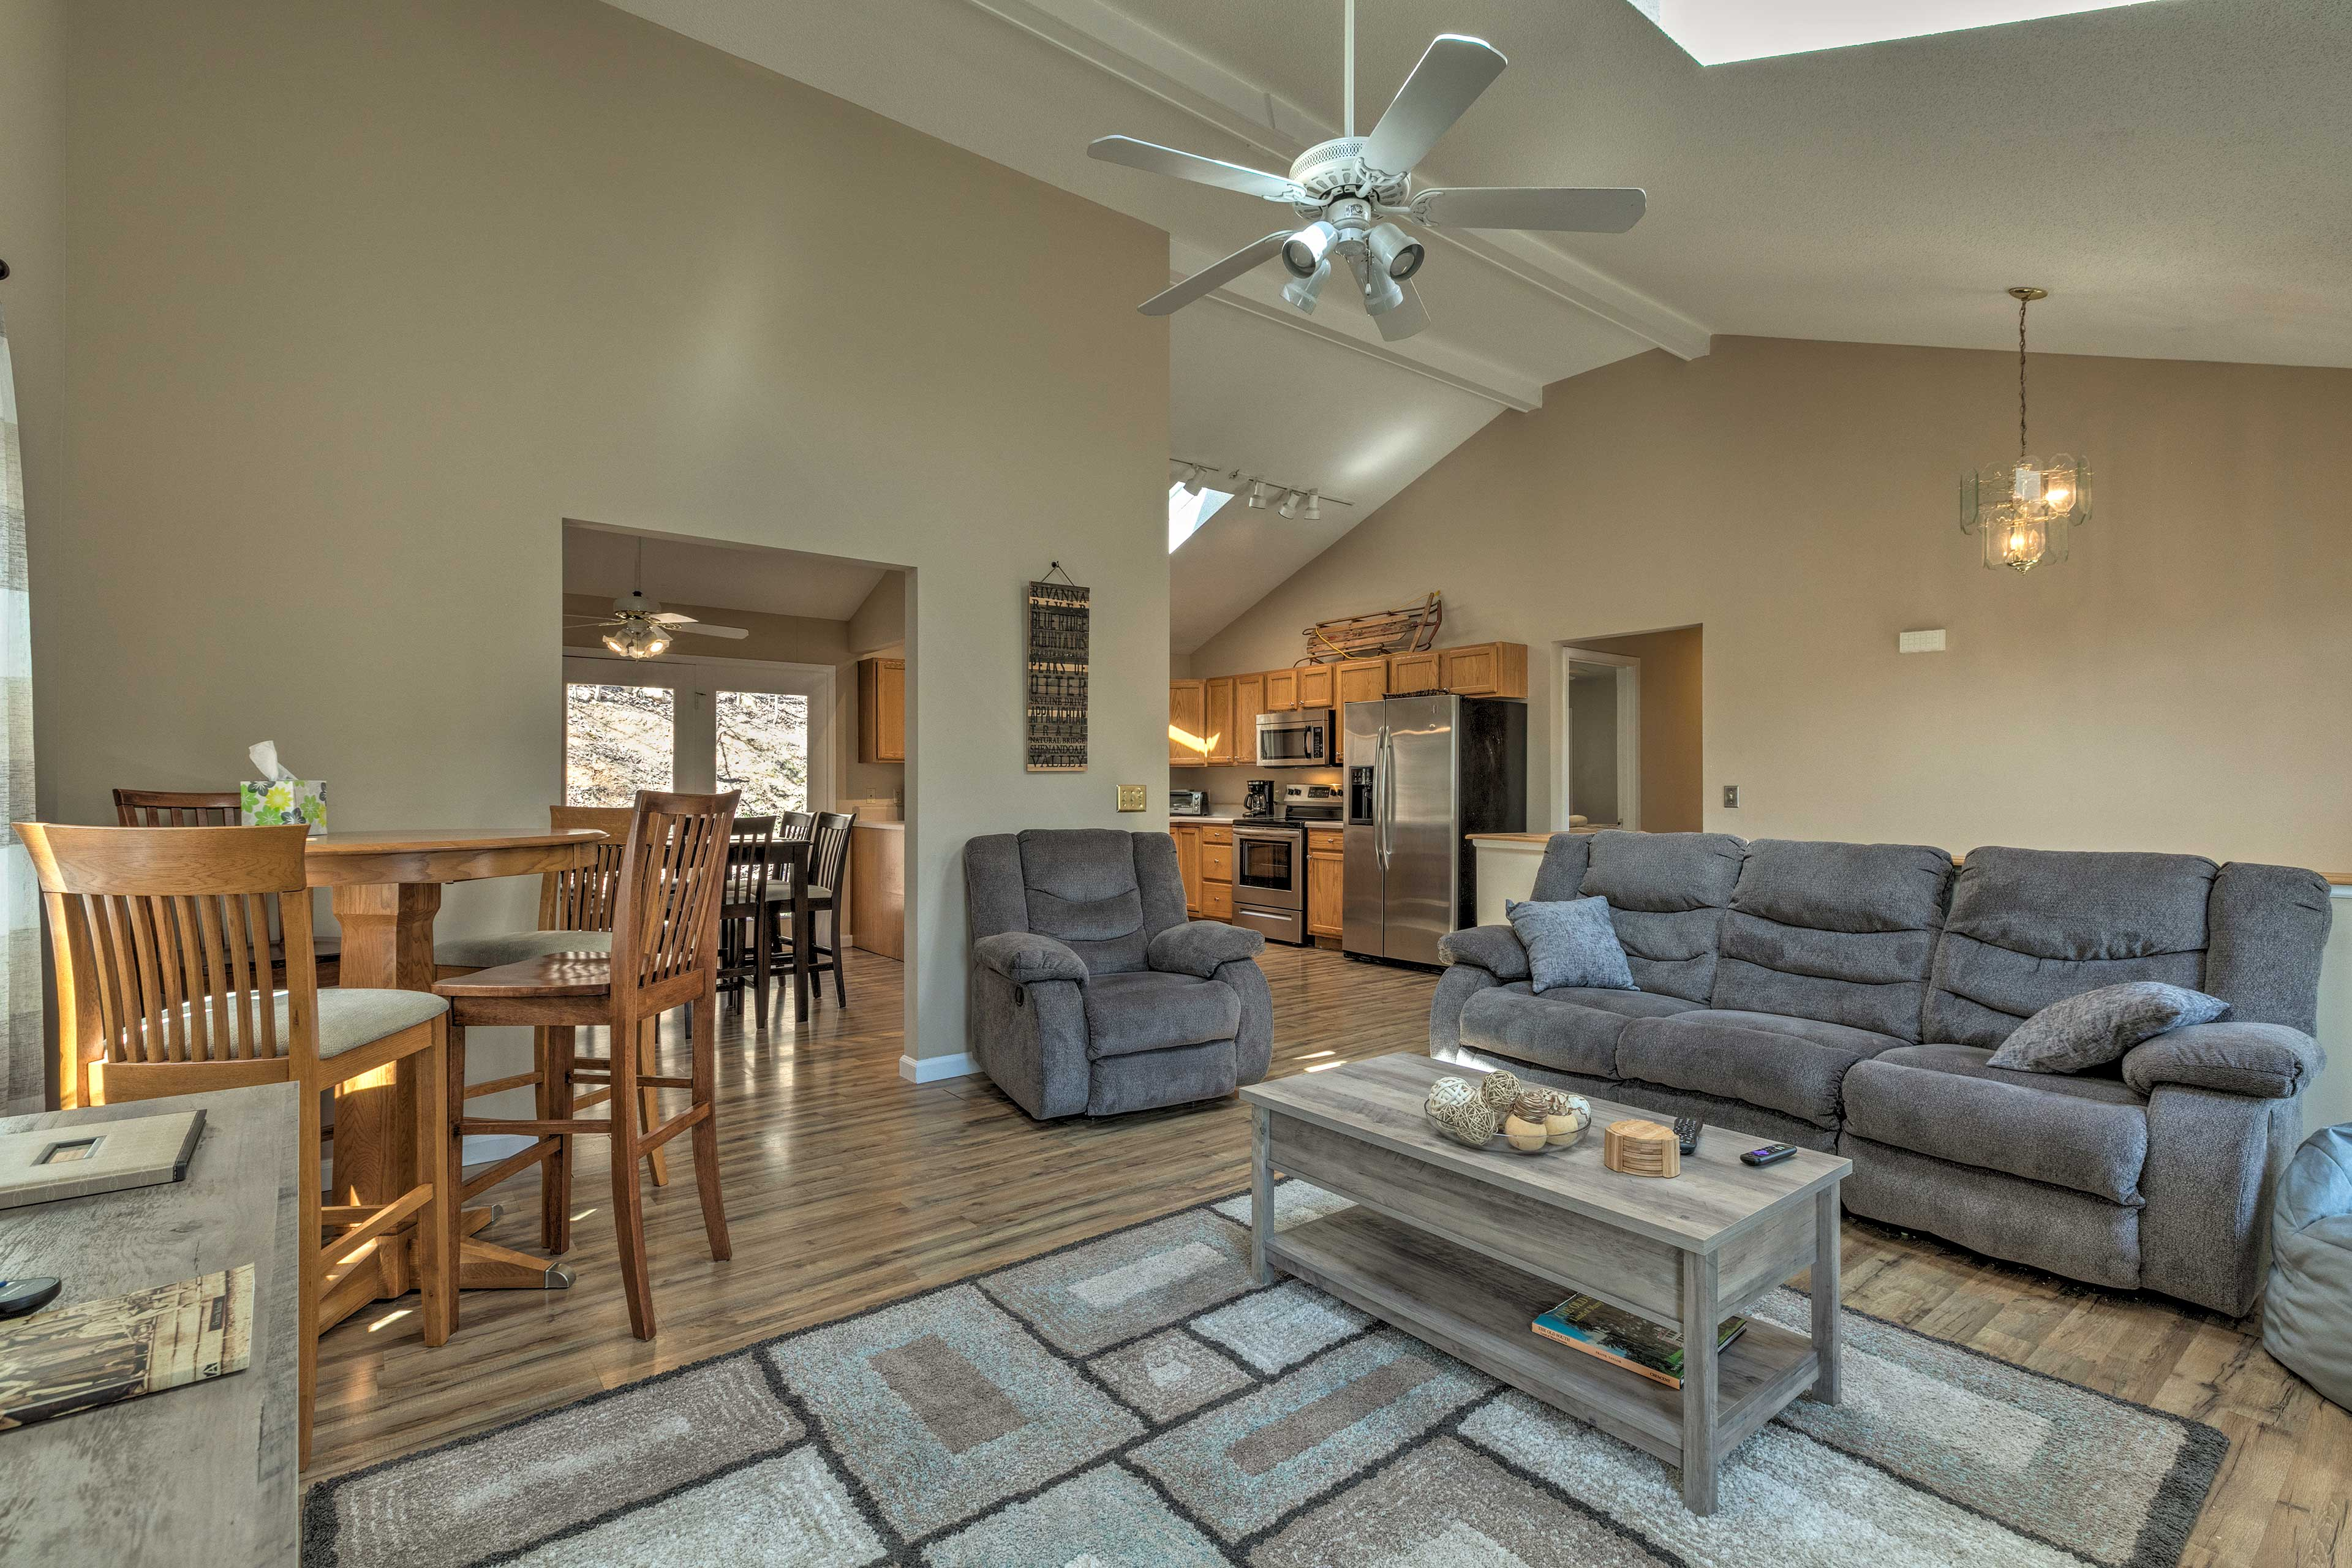 The living room has seating for your whole crew!